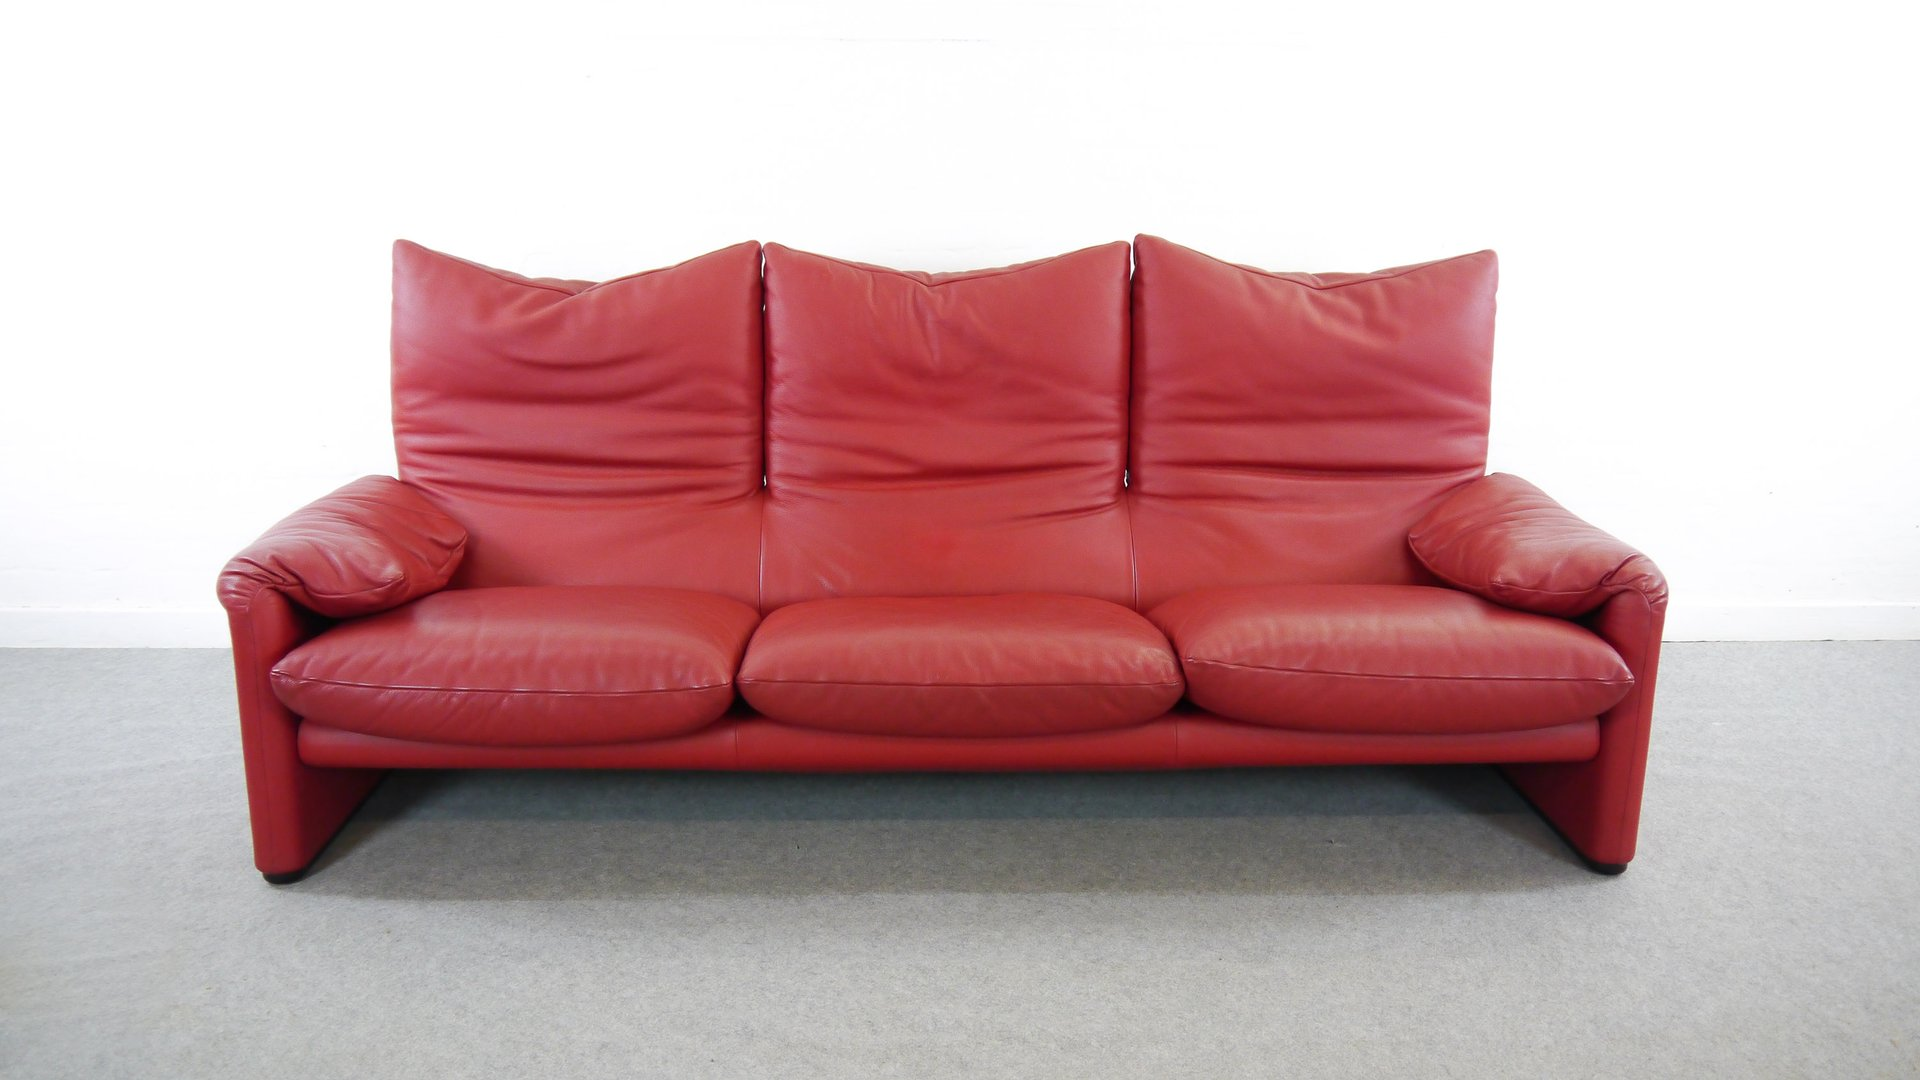 Vintage Maralunga Sofa By Vico Magistretti For Cassina For